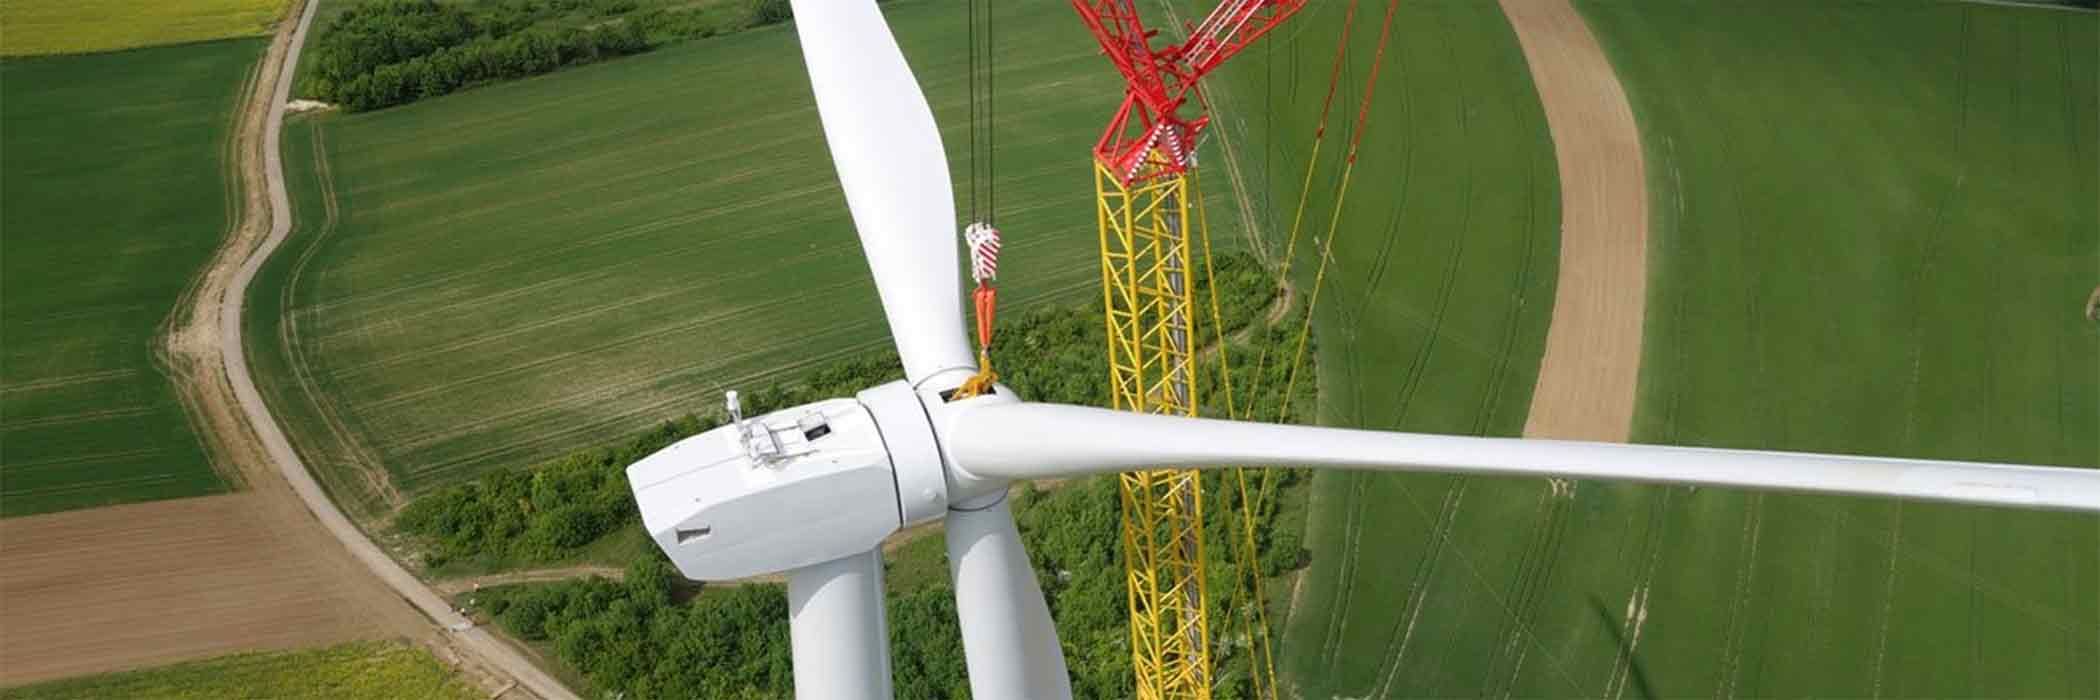 Using sUAS to inspect windmill construction